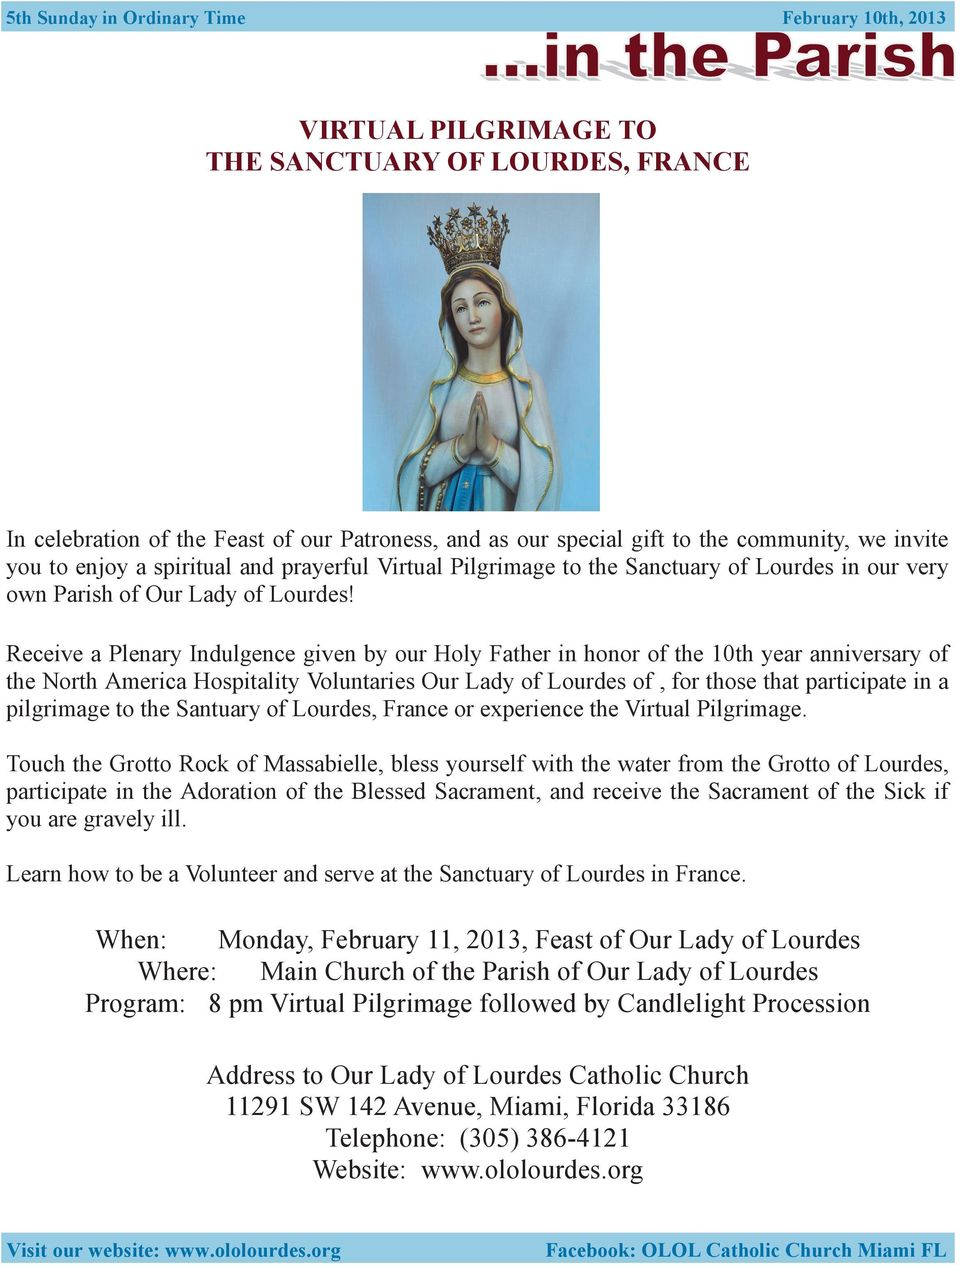 Receive a Plenary Indulgence given by our Holy Father in honor of the 10th year anniversary of the North America Hospitality Voluntaries Our Lady of Lourdes of, for those that participate in a